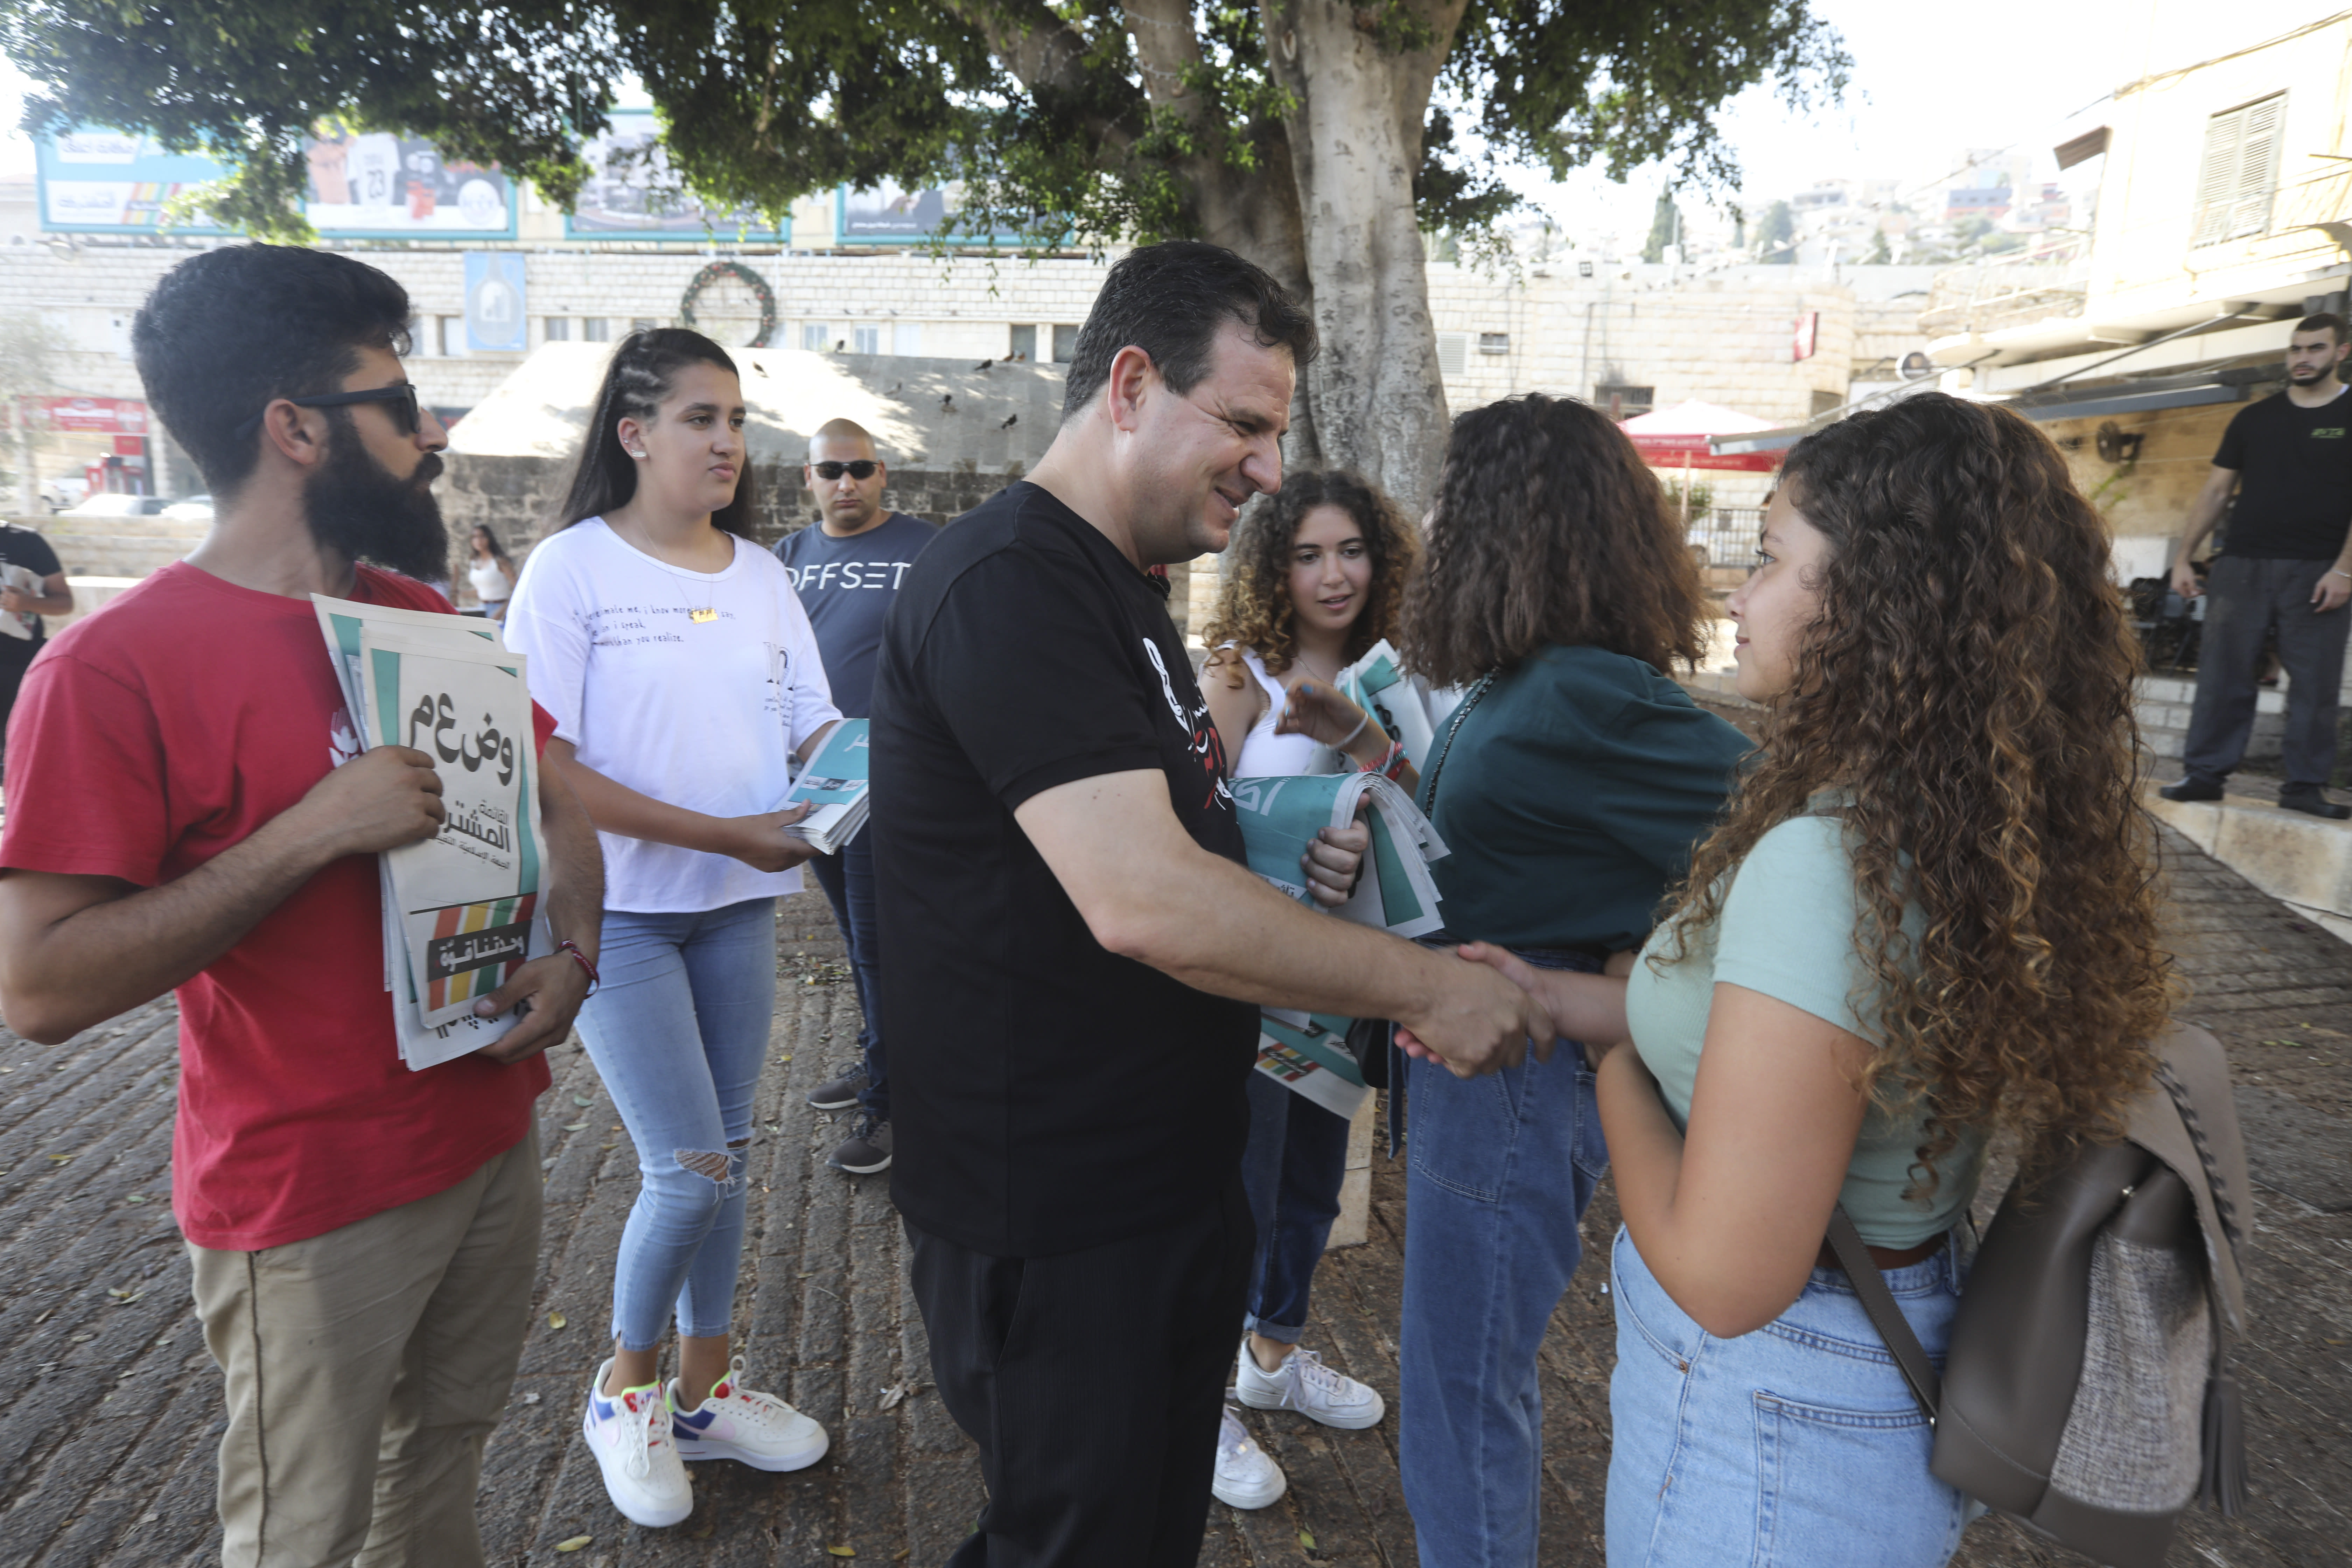 In this Thursday, Aug. 29, 2019 photo, Ayman Odeh, the leader of the Arab Joint List parties, meets constituents in Nazareth, Israel. Odeh has shaken up Israel's election campaign by offering to sit in a moderate coalition government _ a development that would upend decades of convention that has relegated Arab parties to the sidelines and could bring down Prime Minister Benjamin Netanyahu. (AP Photo/Mahmoud Illean)